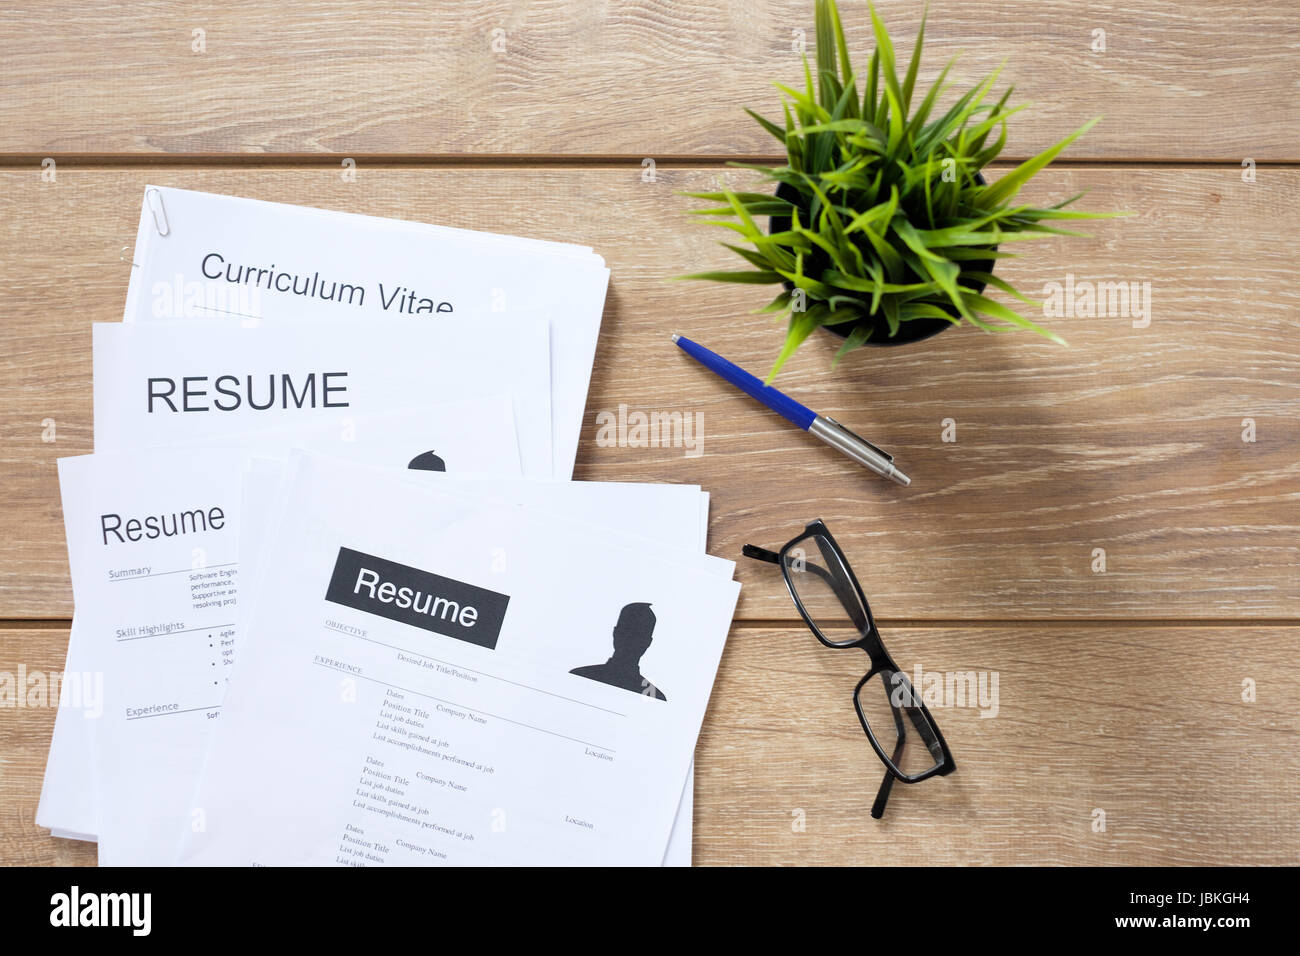 Resume Applications On Wooden Desk Ready To Be Reviewed Stock